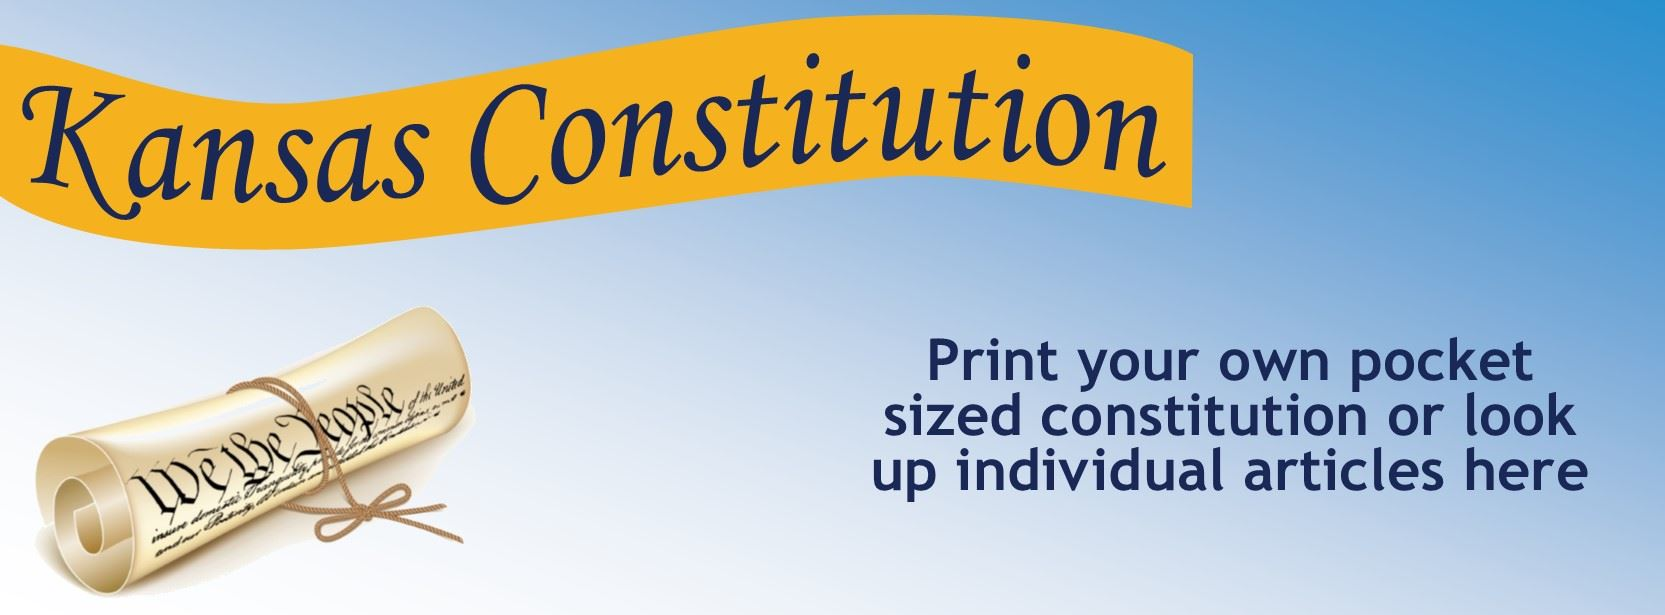 kansas constitution print your own pocket sized constitution or research separate articles